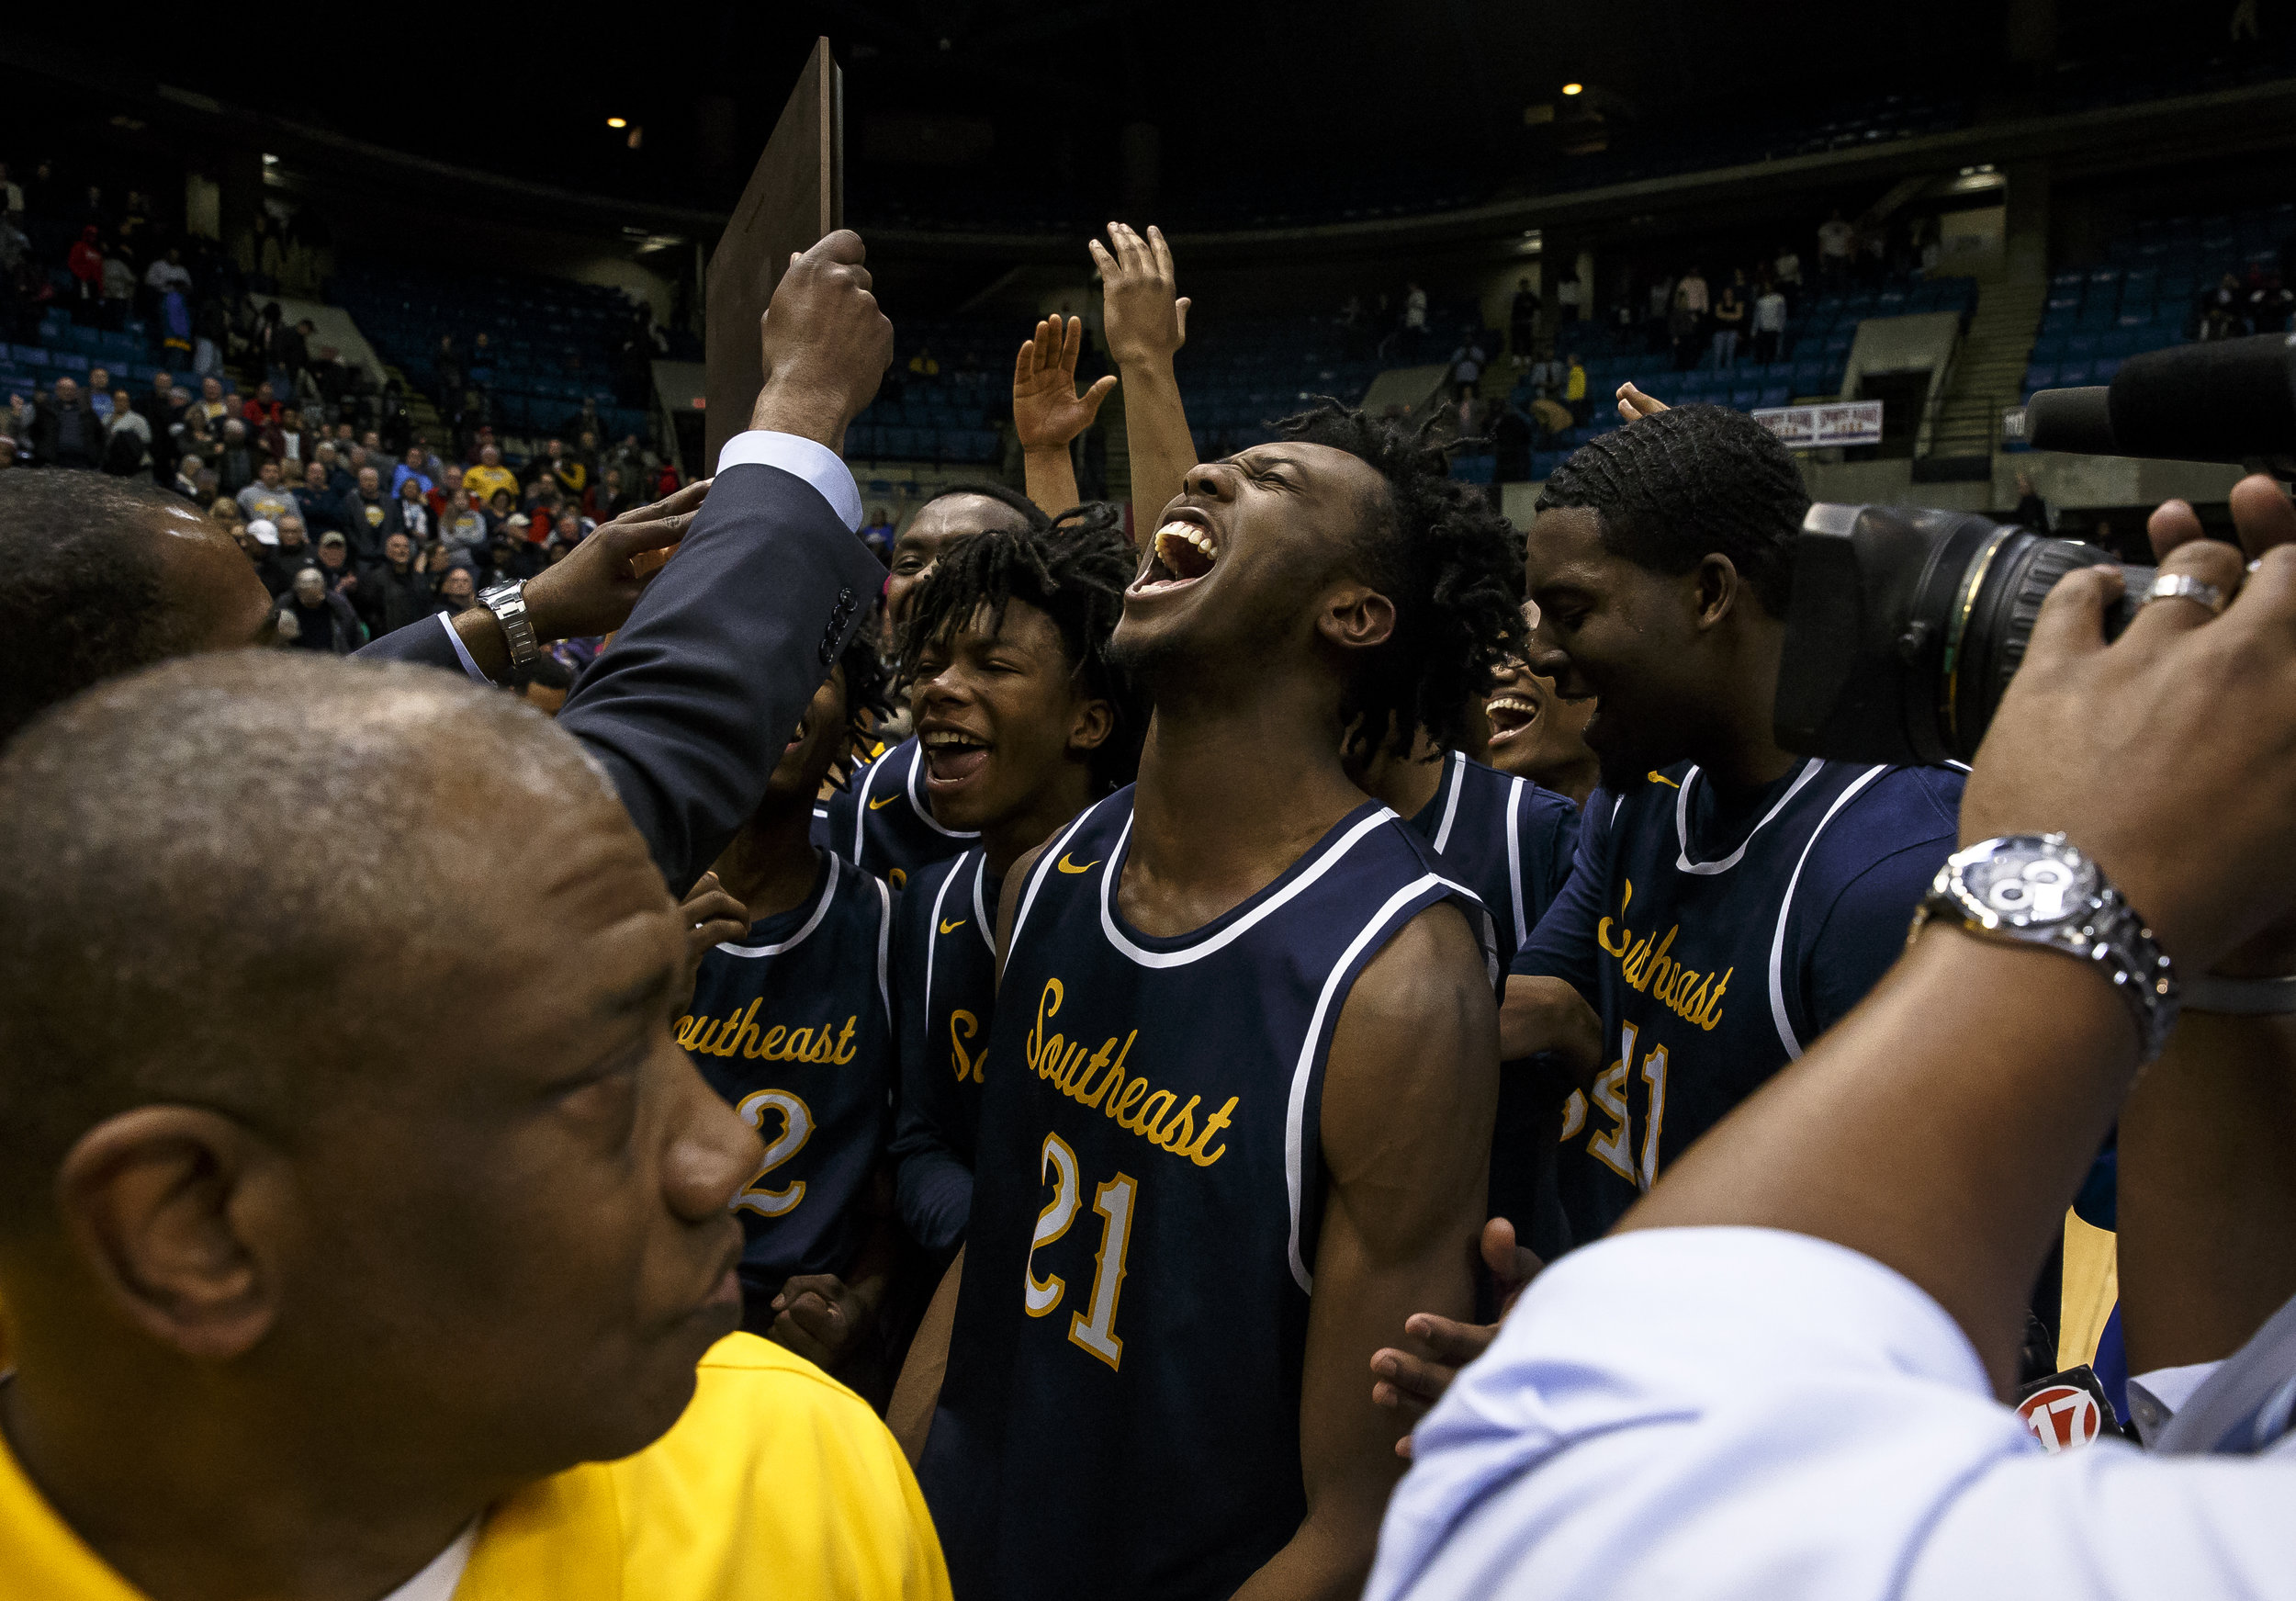 Southeast's Anthony Fairlee (21) screams out as the Spartans accept their championship plaque after their 56-51 victory over Marion in the Class 3A Springfield Supersectional at the Bank of Springfield Center, Tuesday, March 13, 2018, in Springfield, Ill. [Justin L. Fowler/The State Journal-Register]